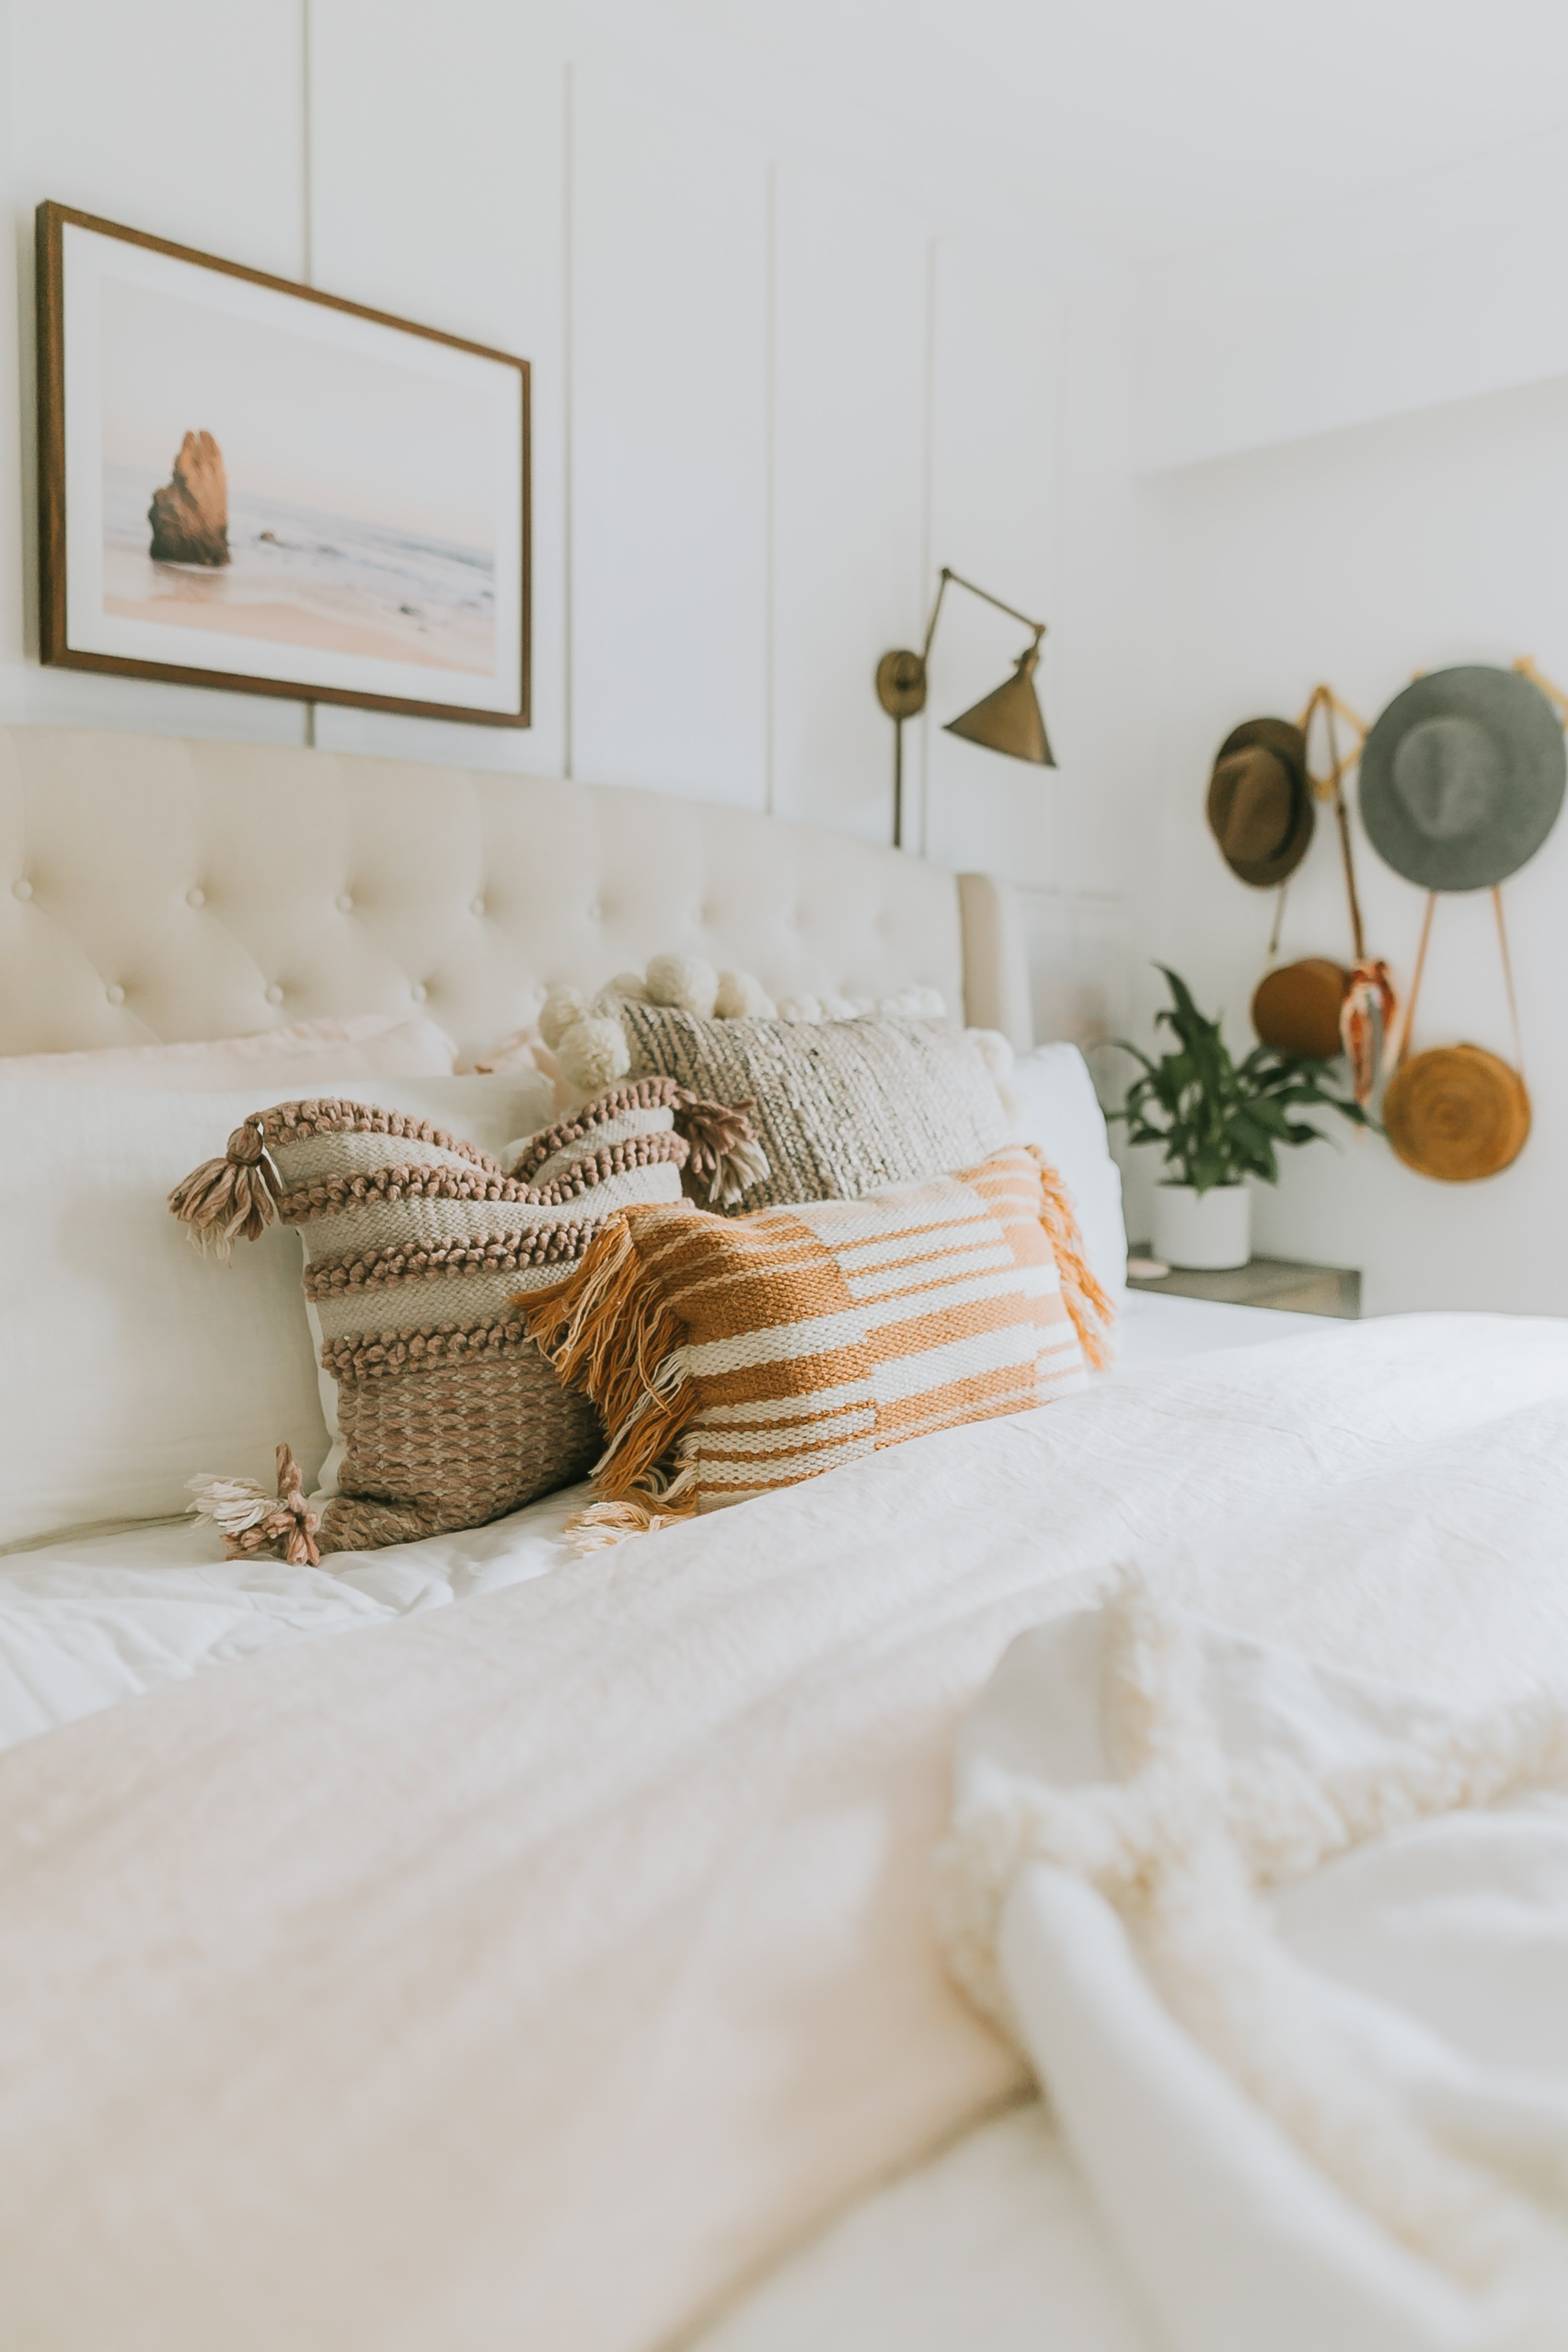 Feeling uninspired in your bedroom? A bit of colour and new linens can change the whole dynamic of the room. How I updated our room for 180!